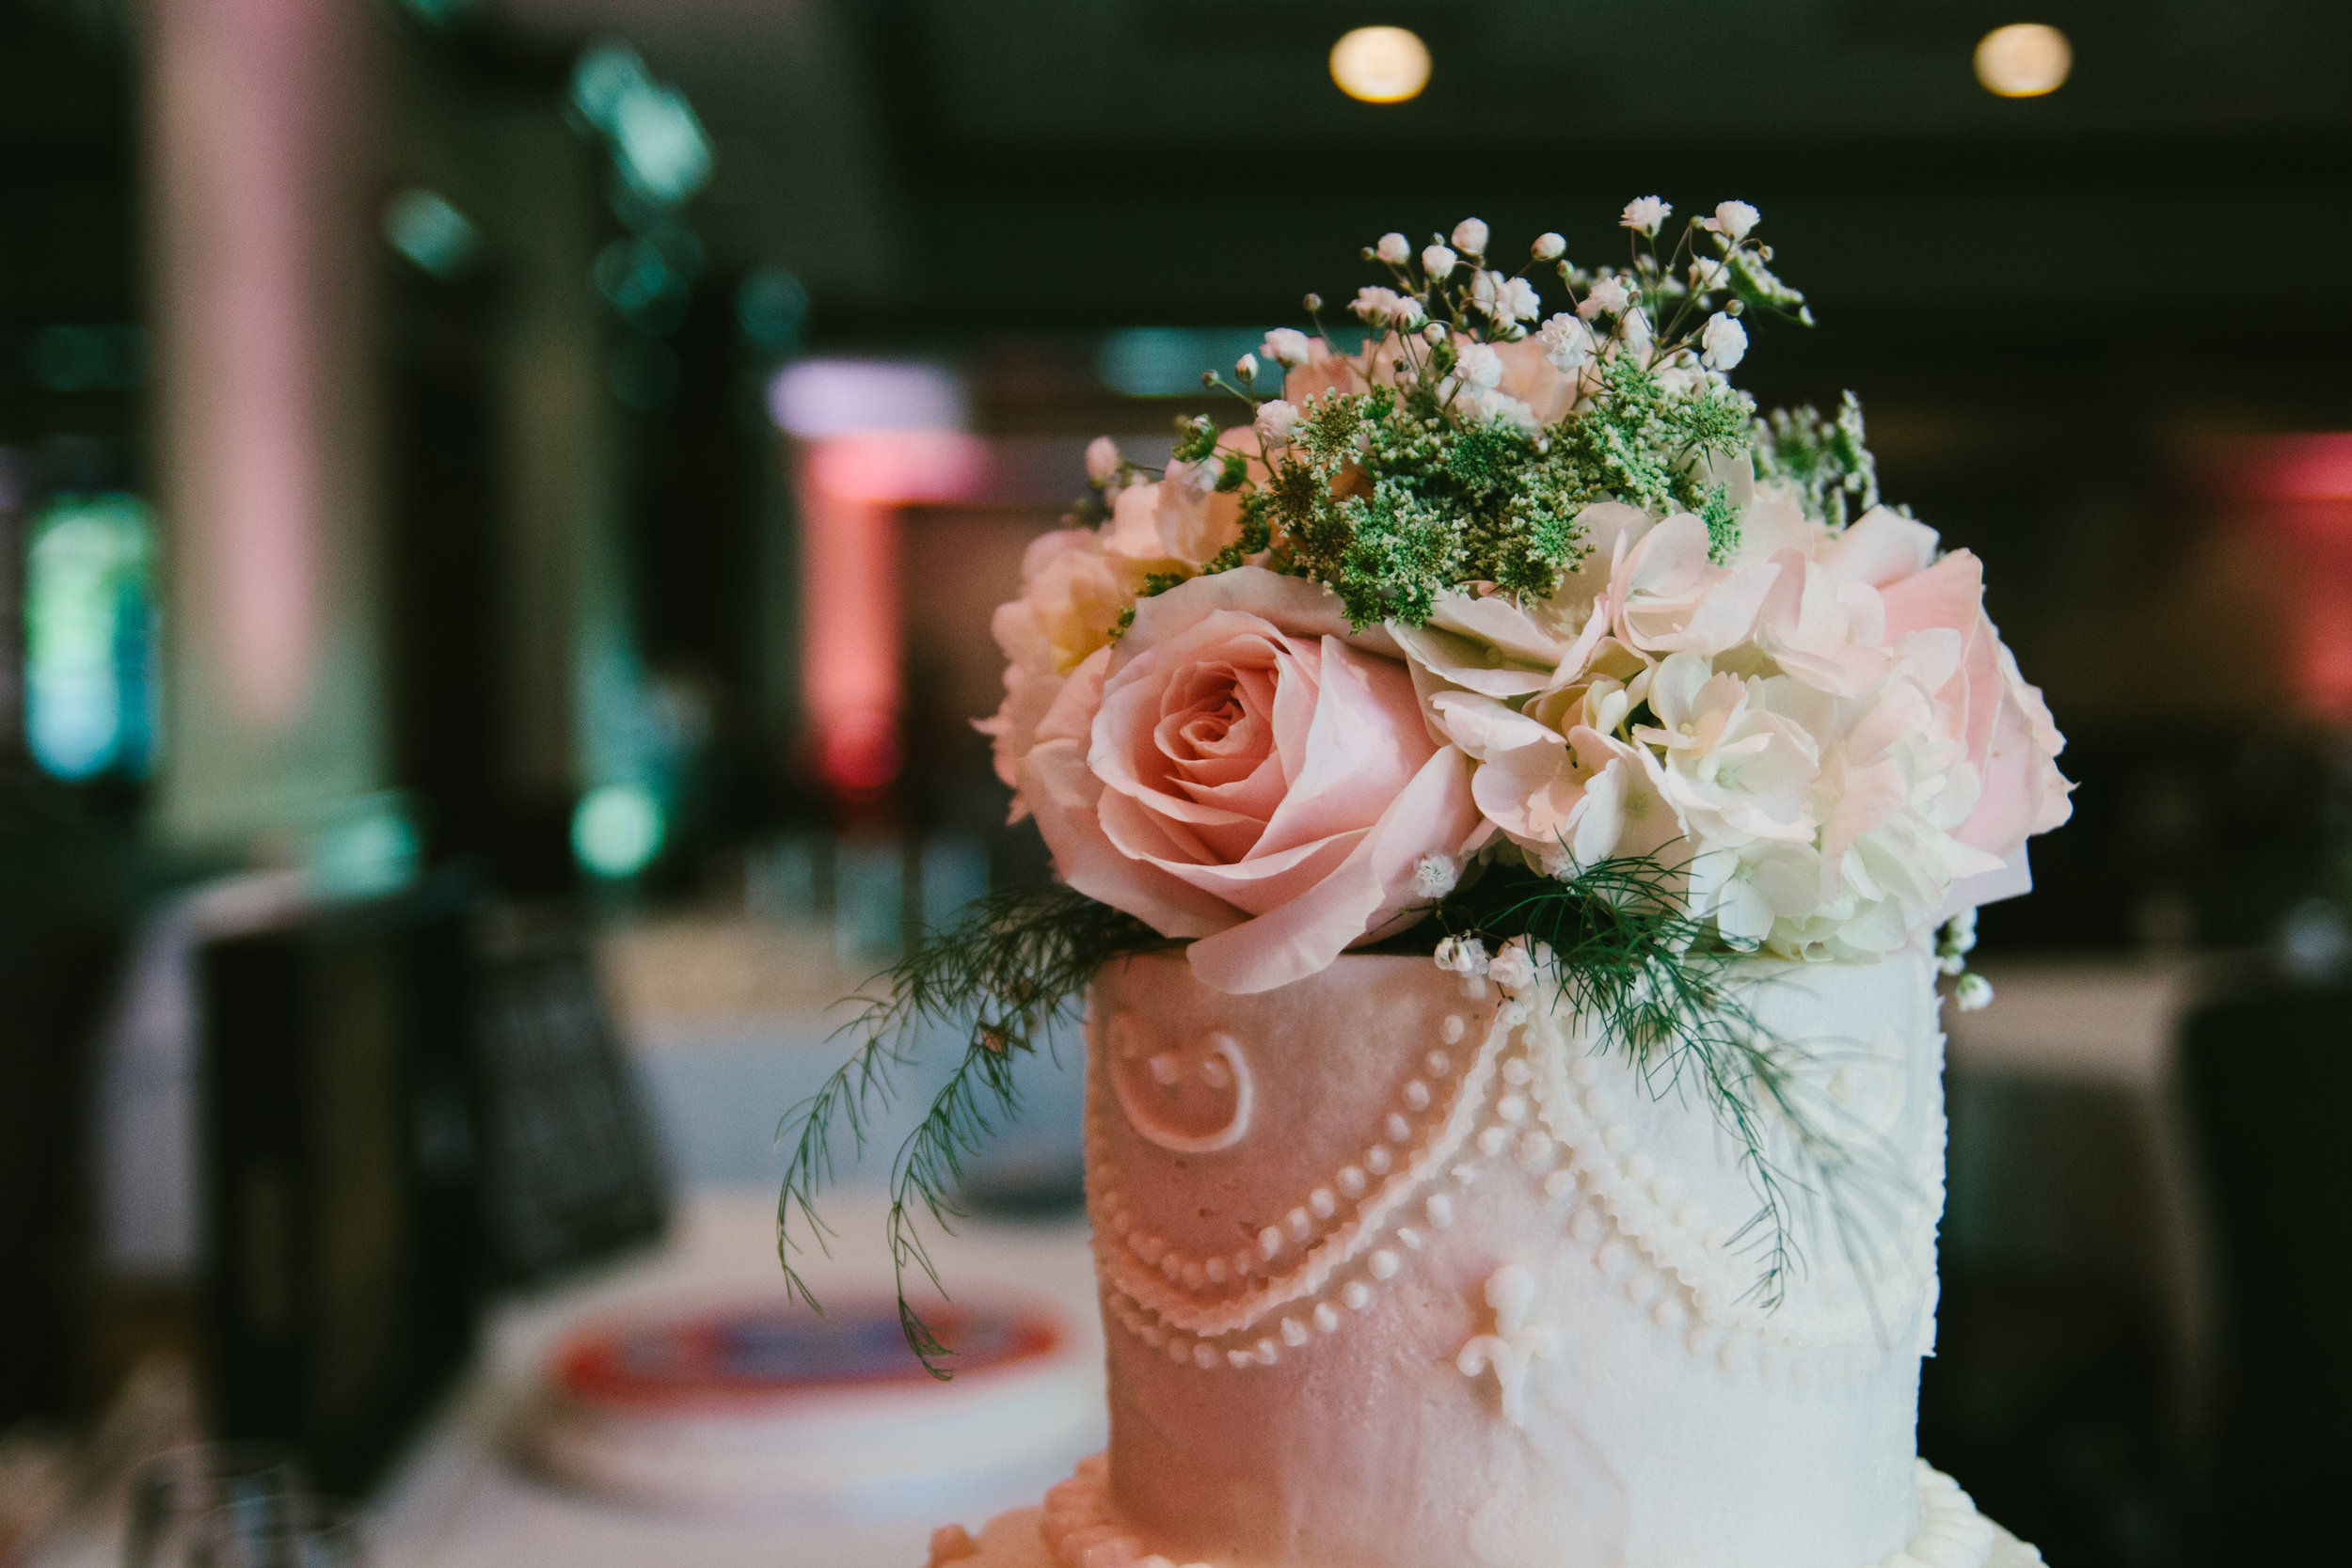 Floral Wedding Cake Topper - A Champagne + Blush Oklahoma Wedding - Meditations Event Center - From Britt's Eye View Photography